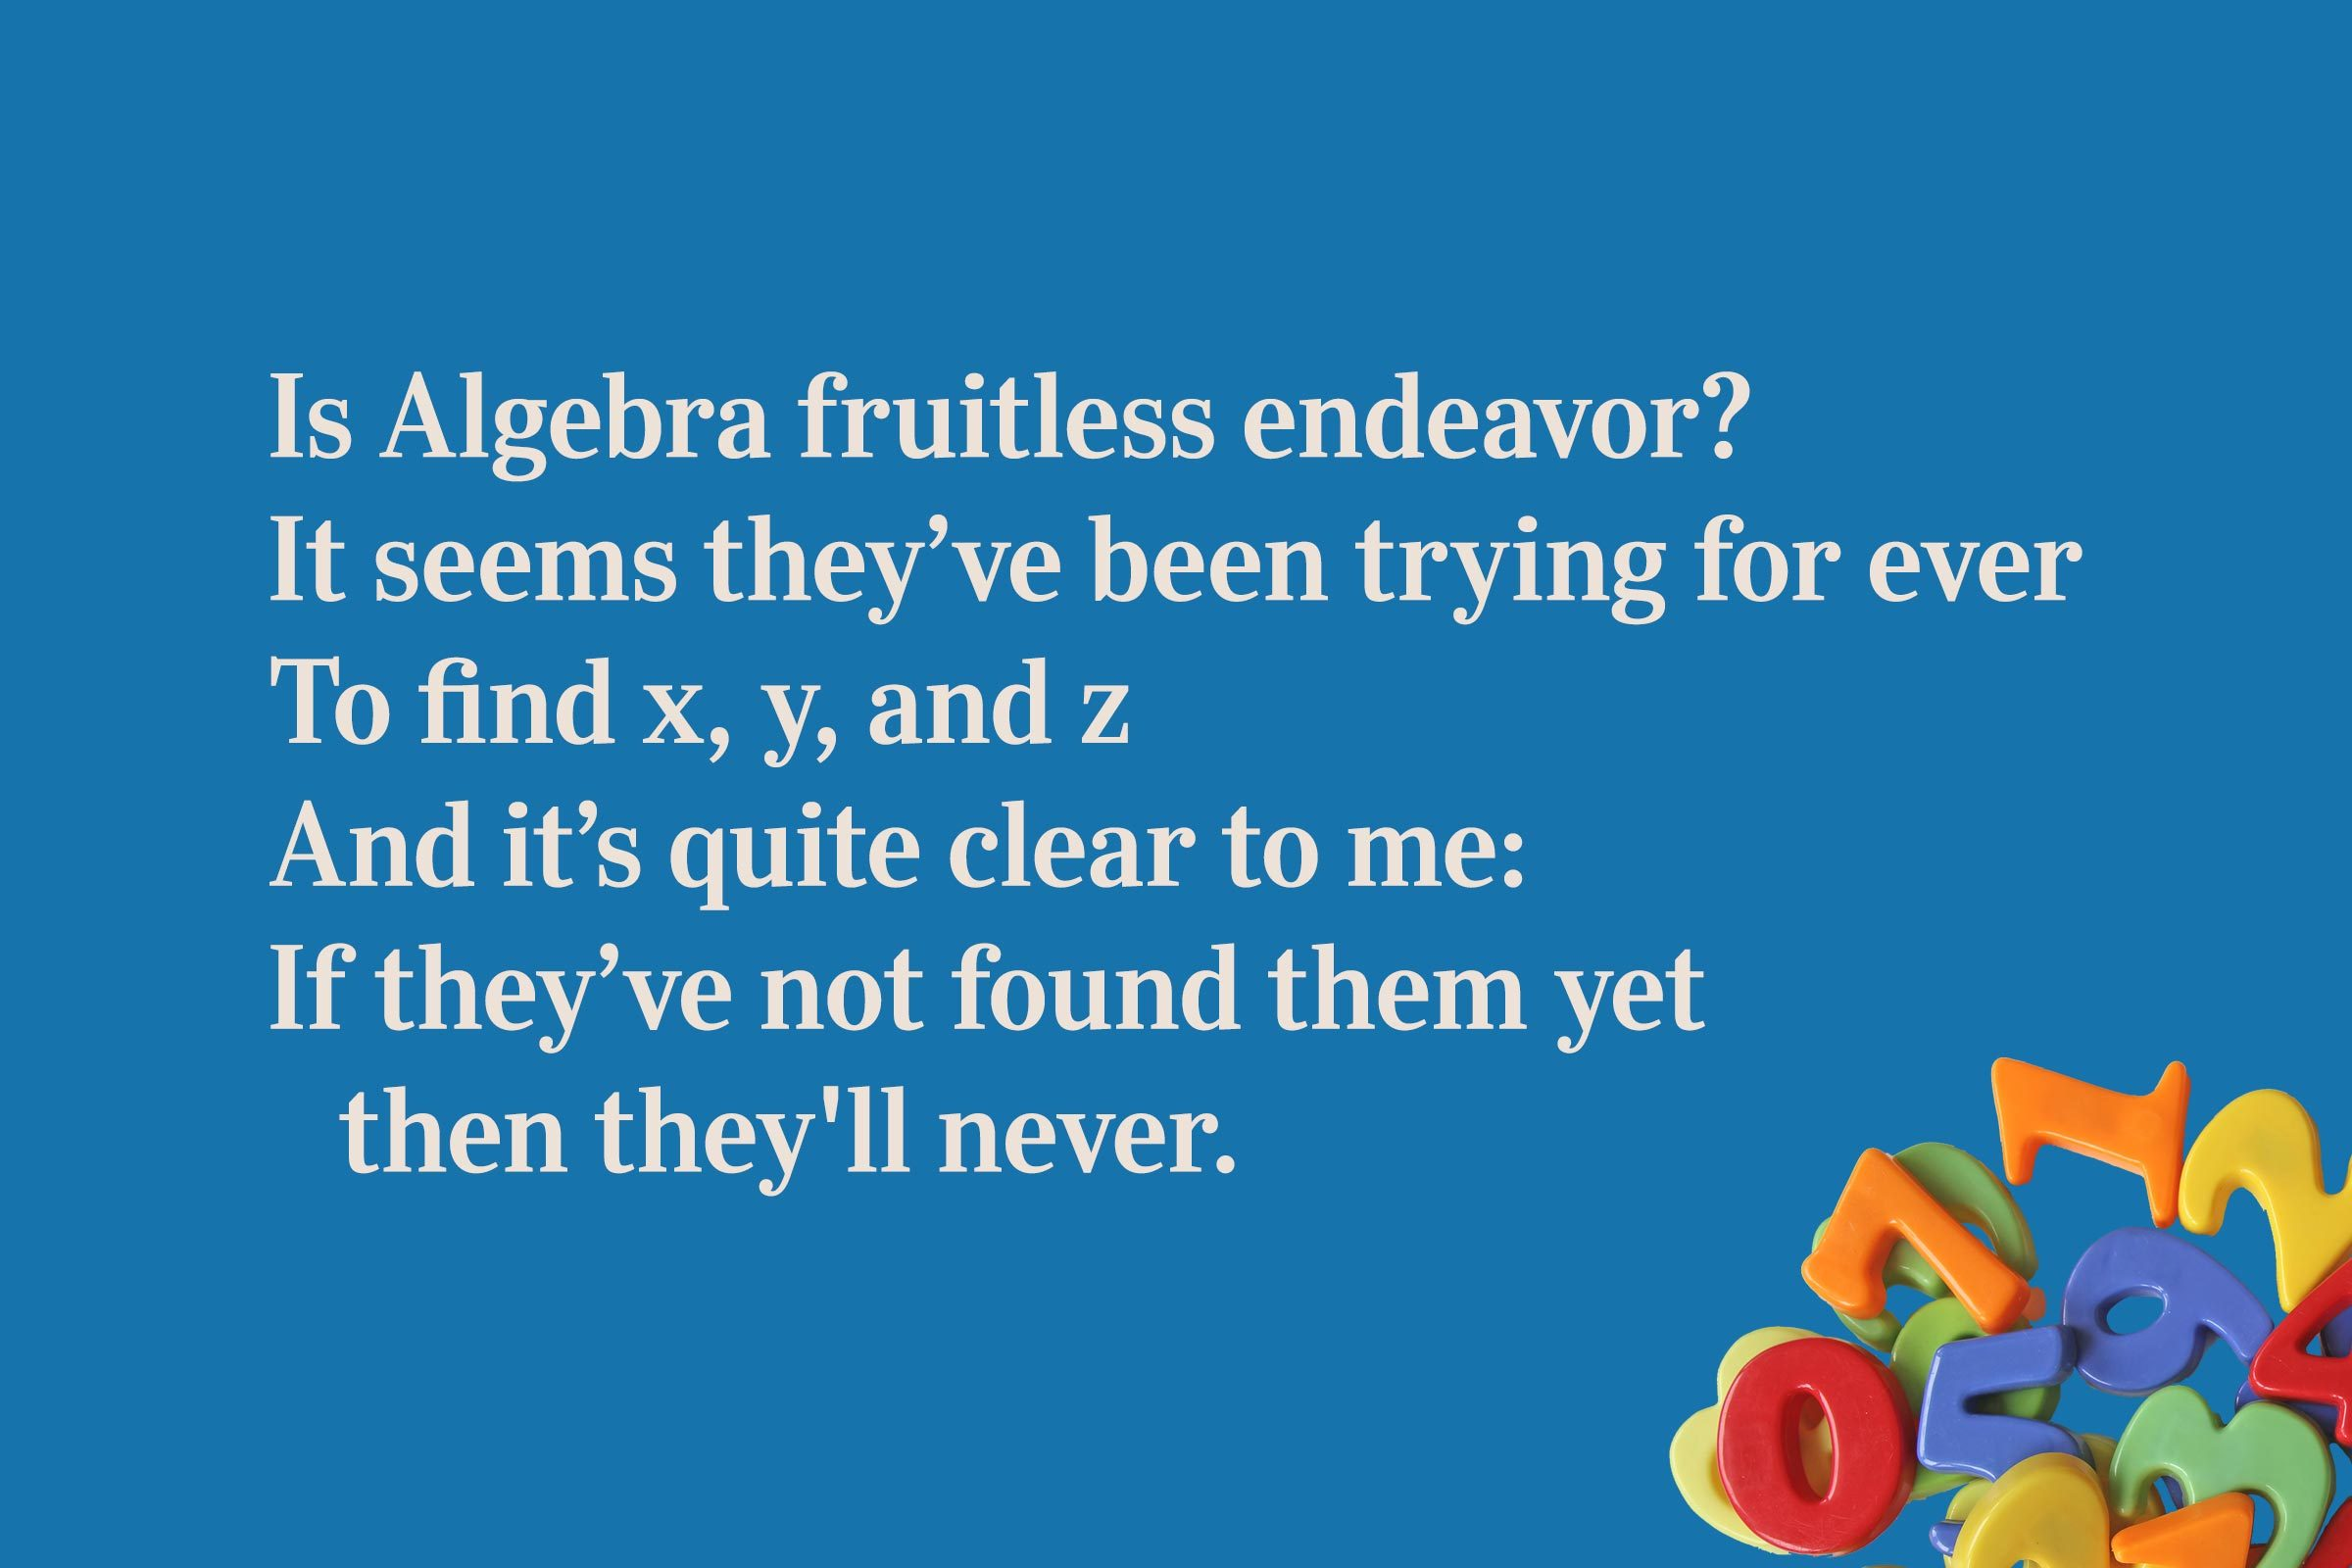 Is Algebra fruitless endeavor? / It seems they've been trying for ever / To find x, y, and z / And it's quite clear to me: / If they've not found them yet then they'll never.